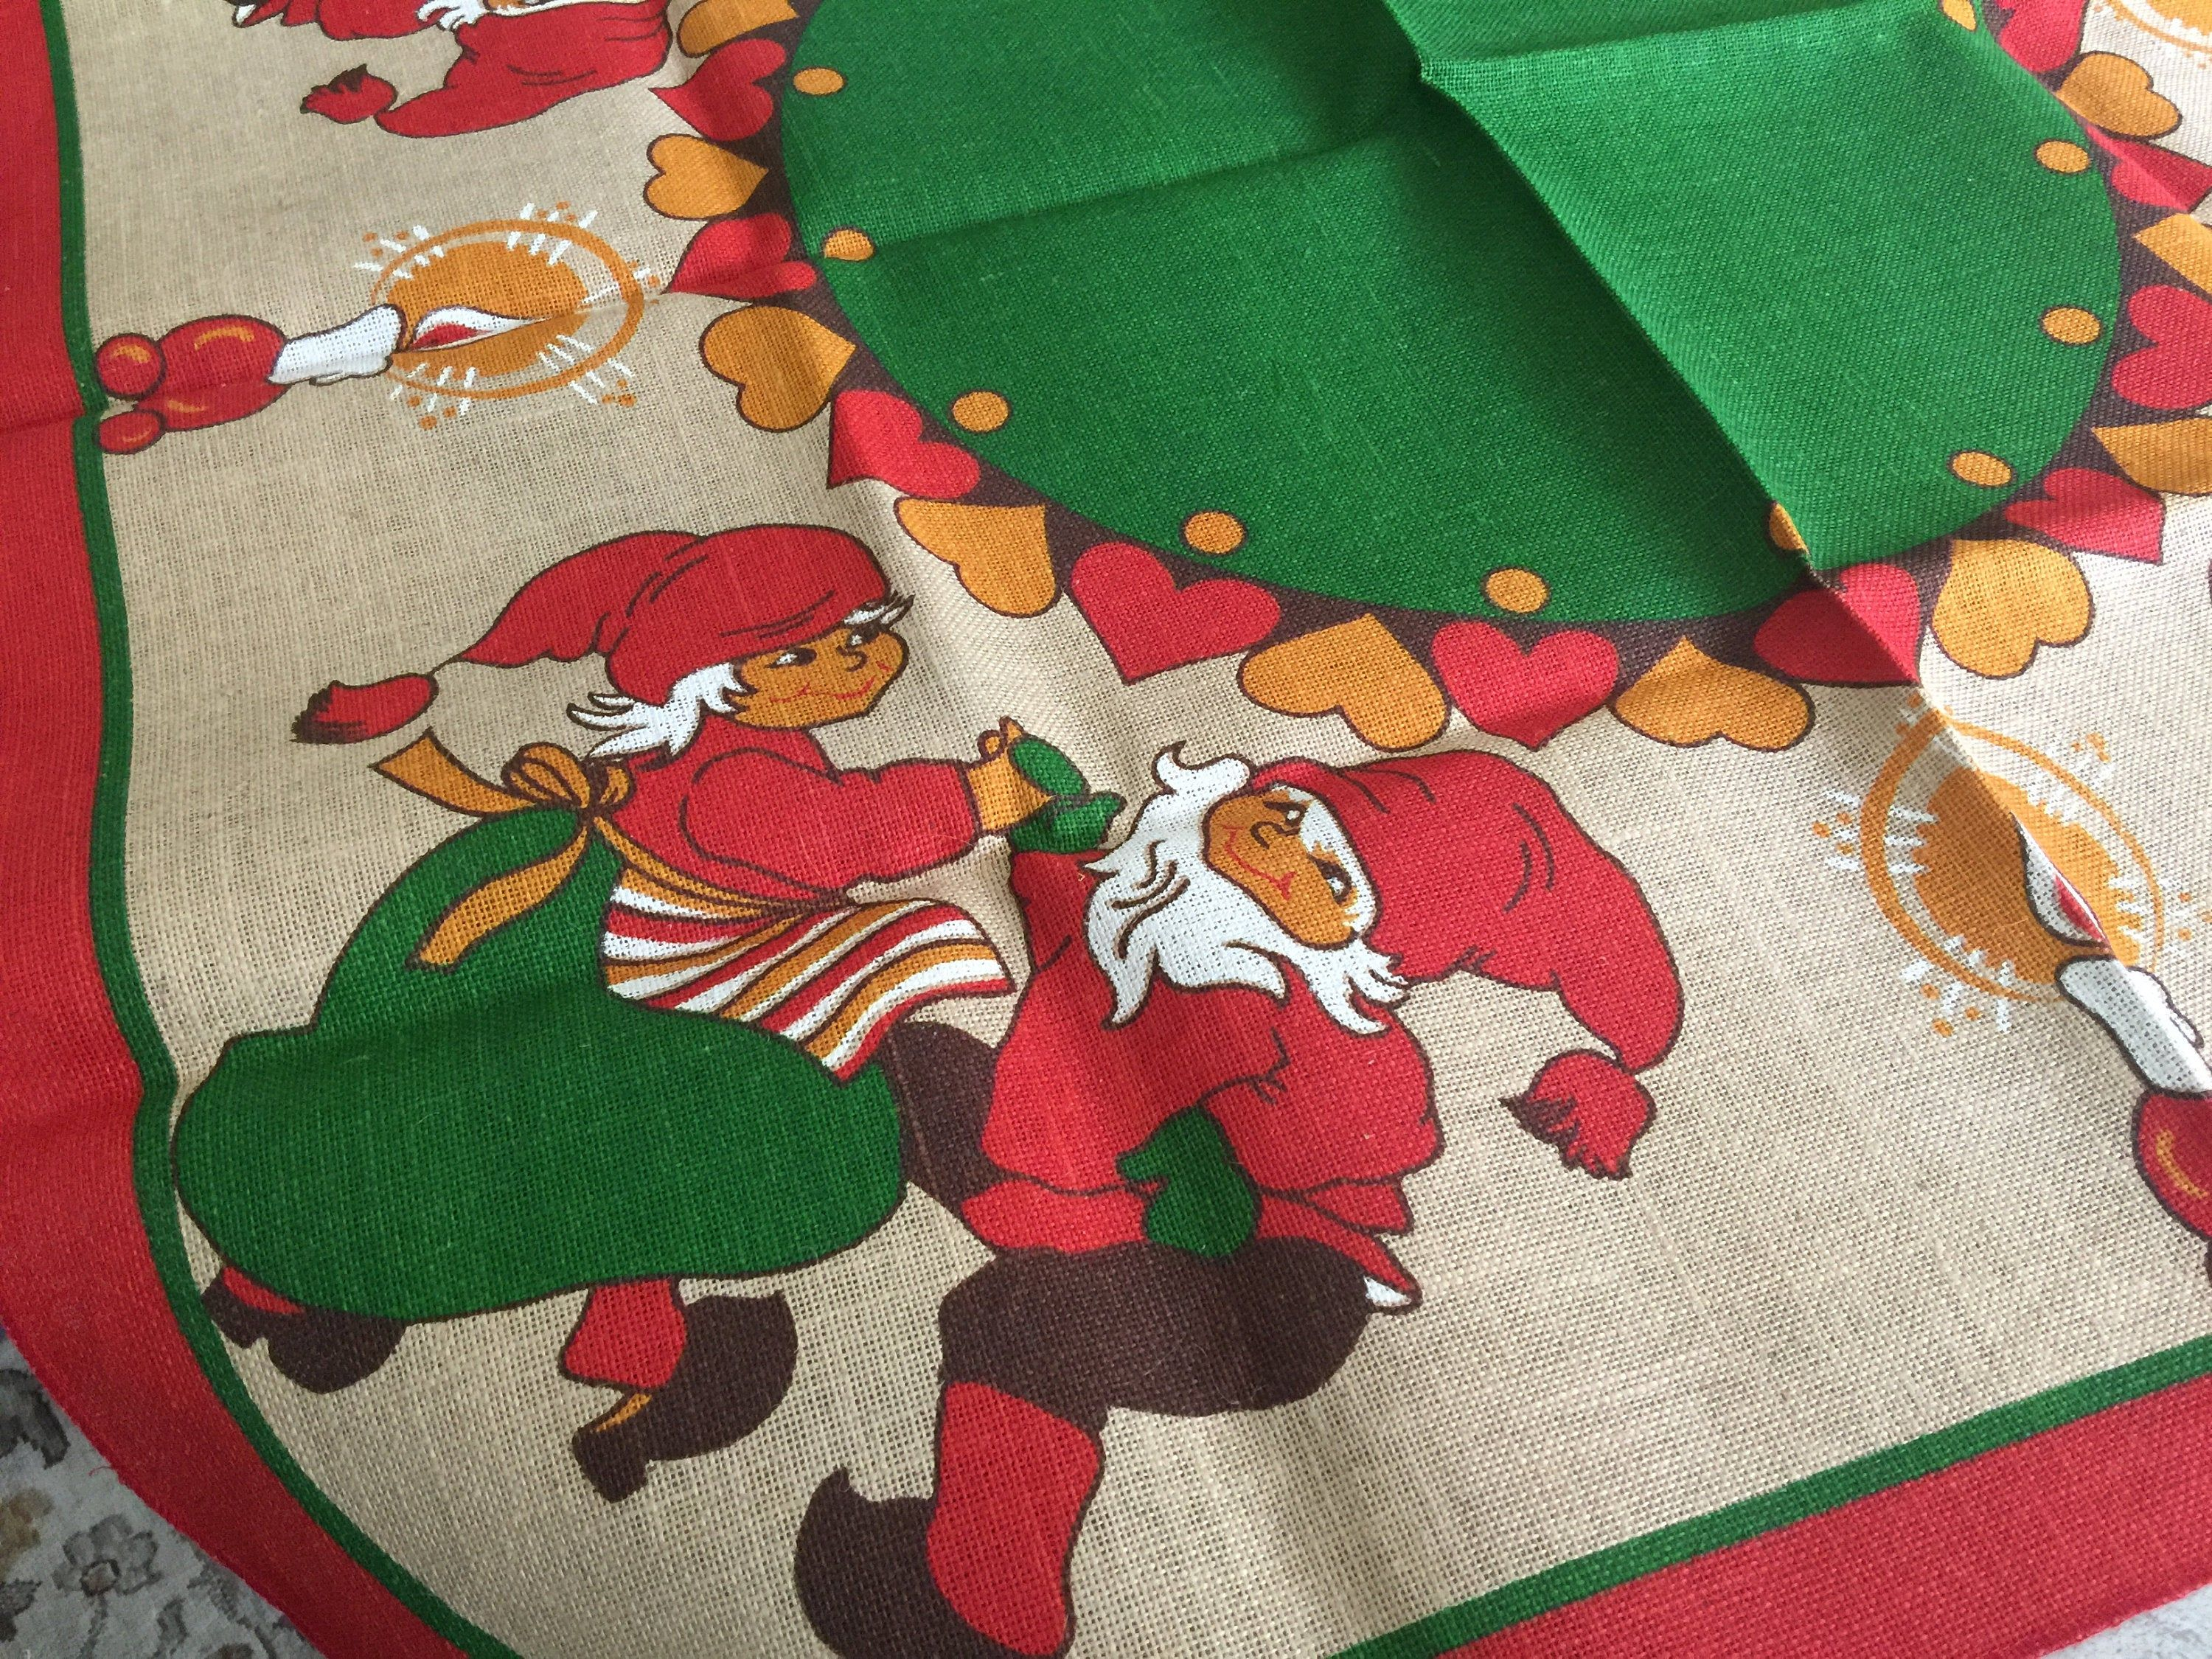 Kitschy Scandinavian Christmas Tablecloth 39 Square Boho Mod Gift Red Green Tomtens Trolls V Christmas Table Cloth Holiday Table Linens Scandinavian Christmas